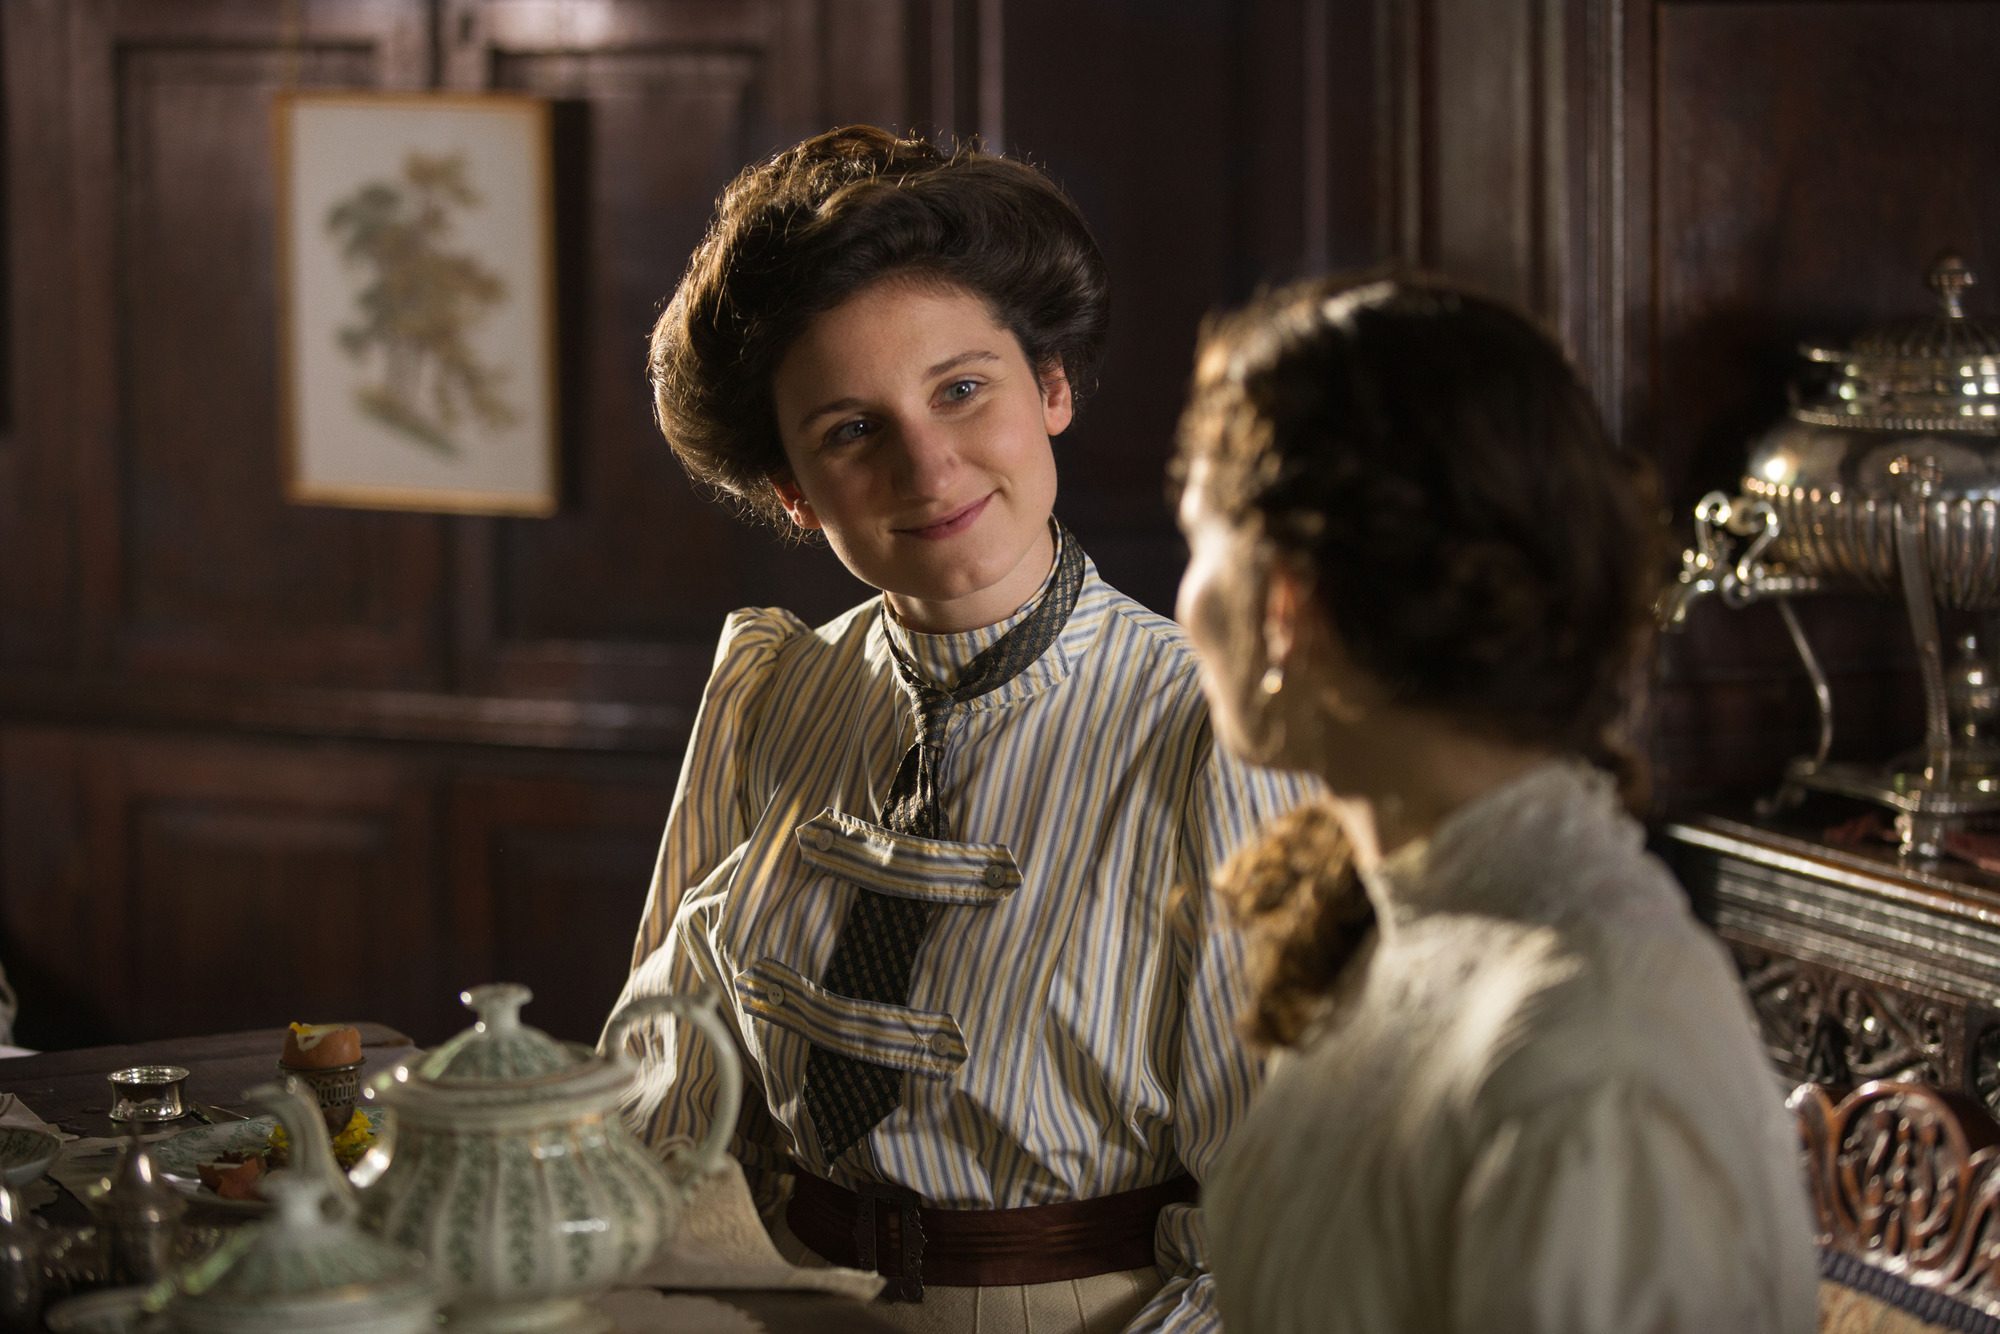 WARNING: Embargoed for publication until 00:00:01 on 07/11/2017 - Programme Name: Howards End - TX: n/a - Episode: Howards End - Ep 1 (No. n/a) - Picture Shows: *STRICTLY NOT FOR PUBLICATION UNTIL 00:01HRS, TUESDAY 7TH NOVEMBER, 2017* Evie Wilcox (BESSIE CARTER) - (C) Playground Television UK Limited 2017 - Photographer: Laurie Sparham